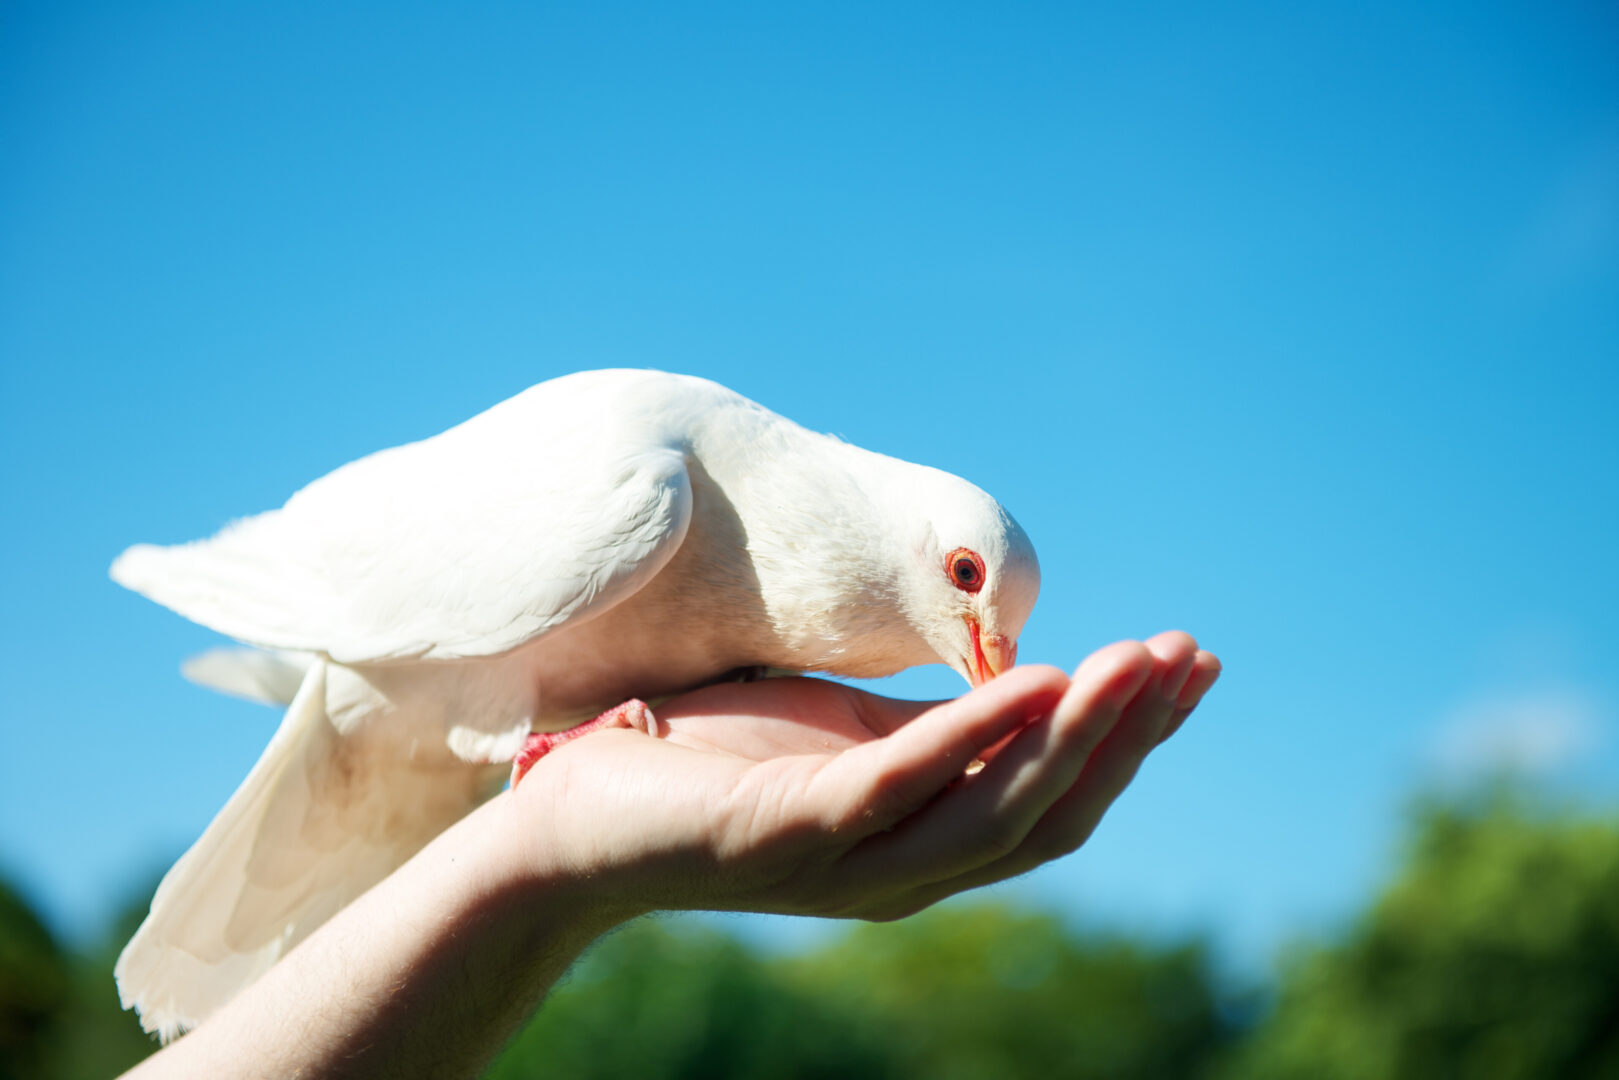 white dove bird on a human hand eating